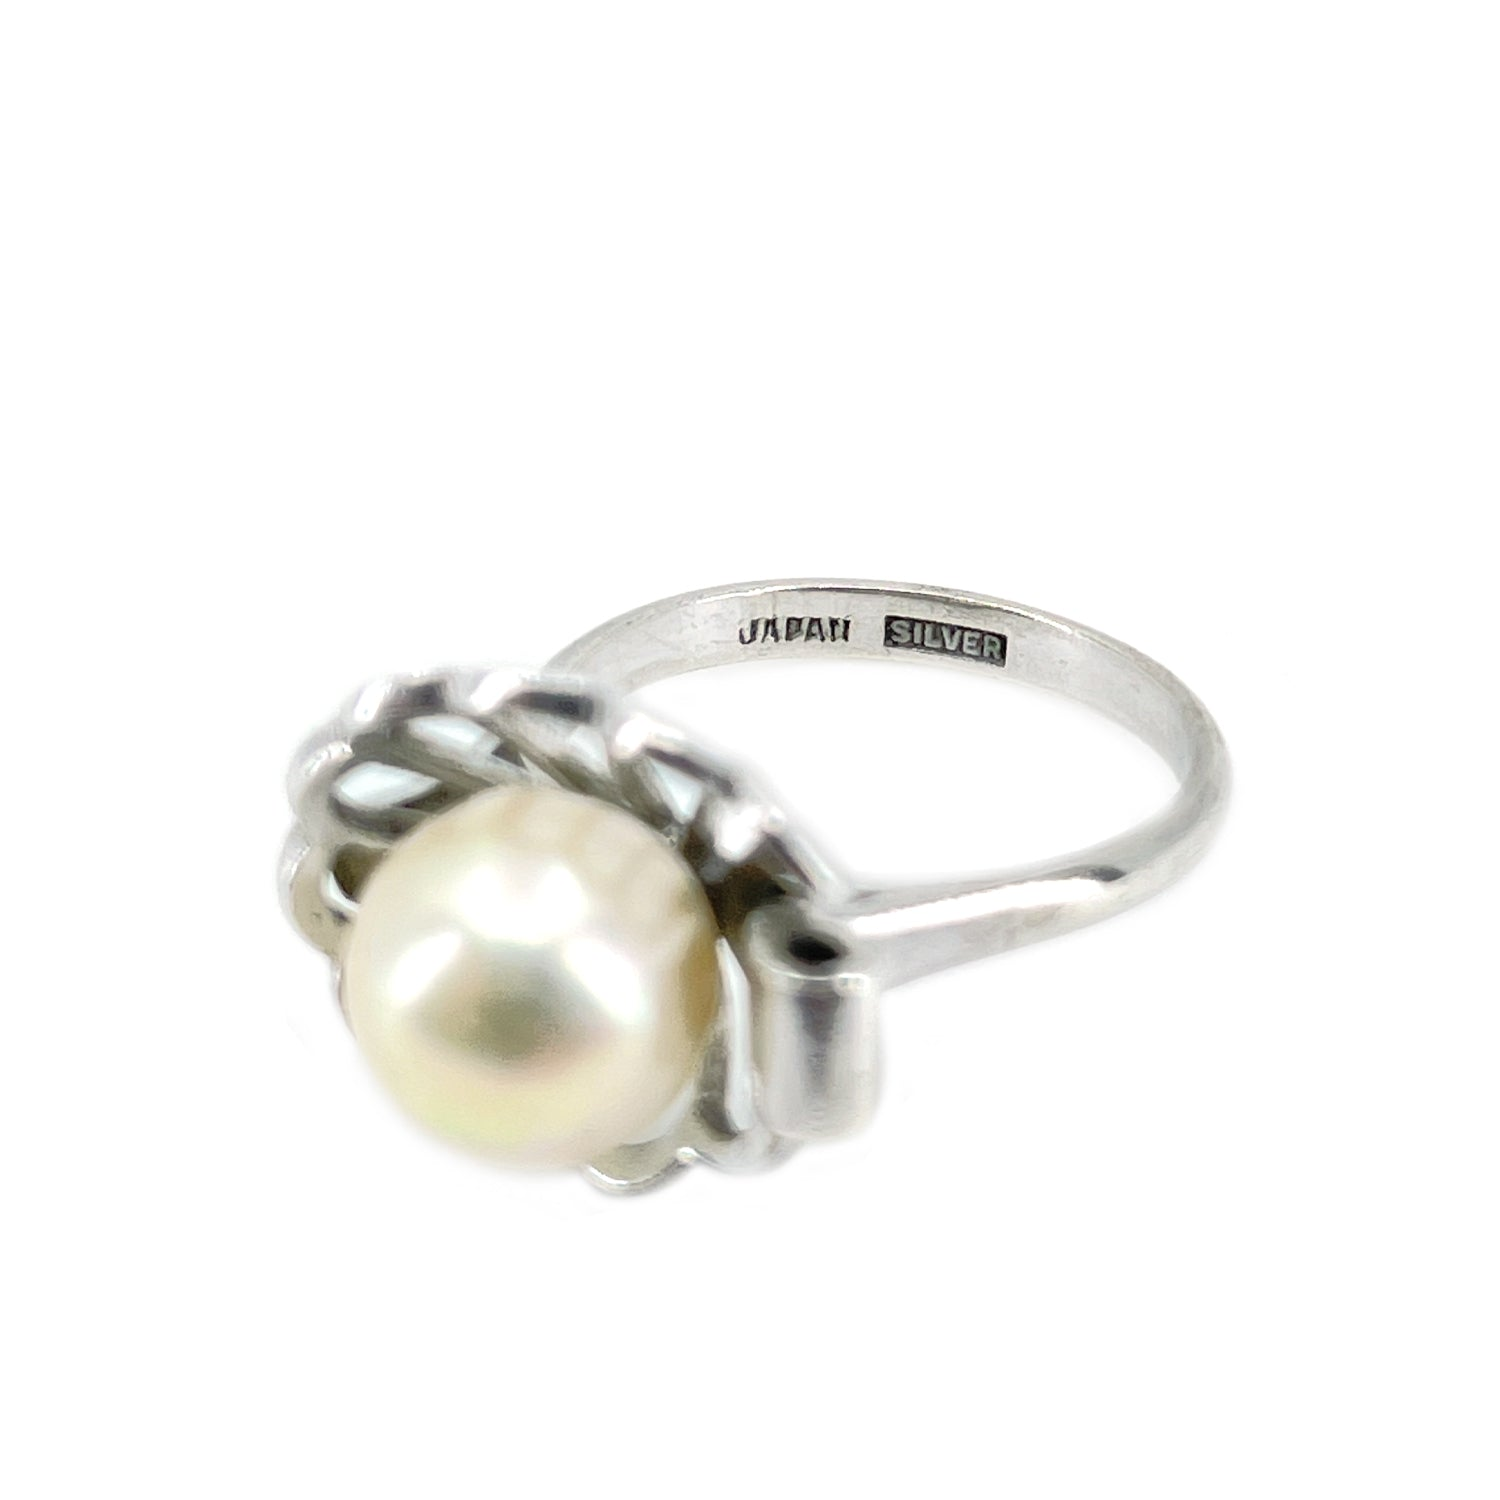 Halo Japanese Saltwater Akoya Cultured Pearl Ring- Sterling Silver Sz 6